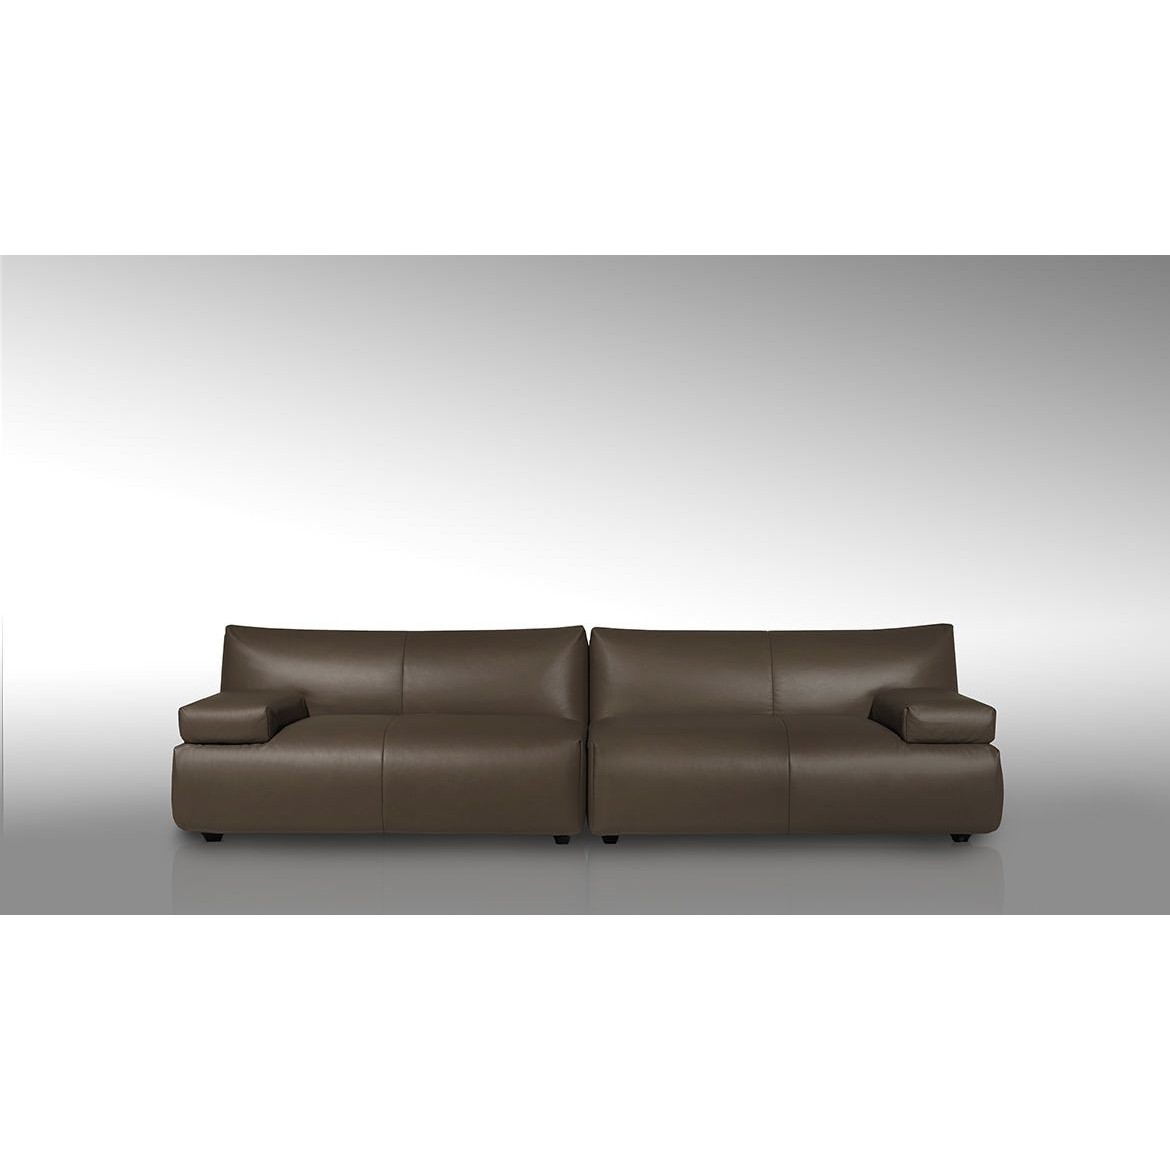 Диван, стиль хай-тек, дизайн Fendi Casa, модель Agadir Sectional Sofa